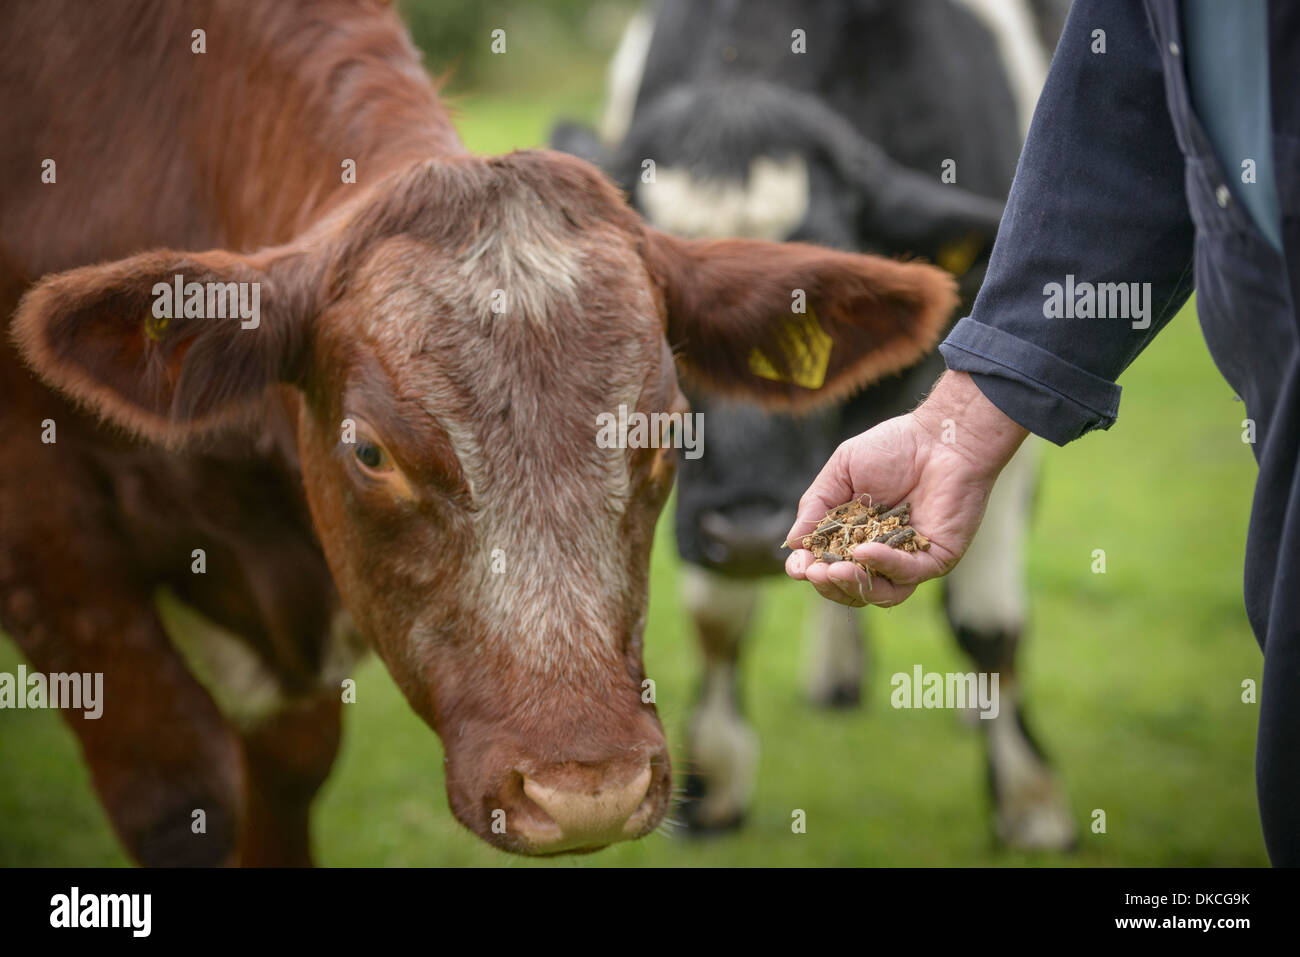 Close up of farmer feeding cattle by hand - Stock Image